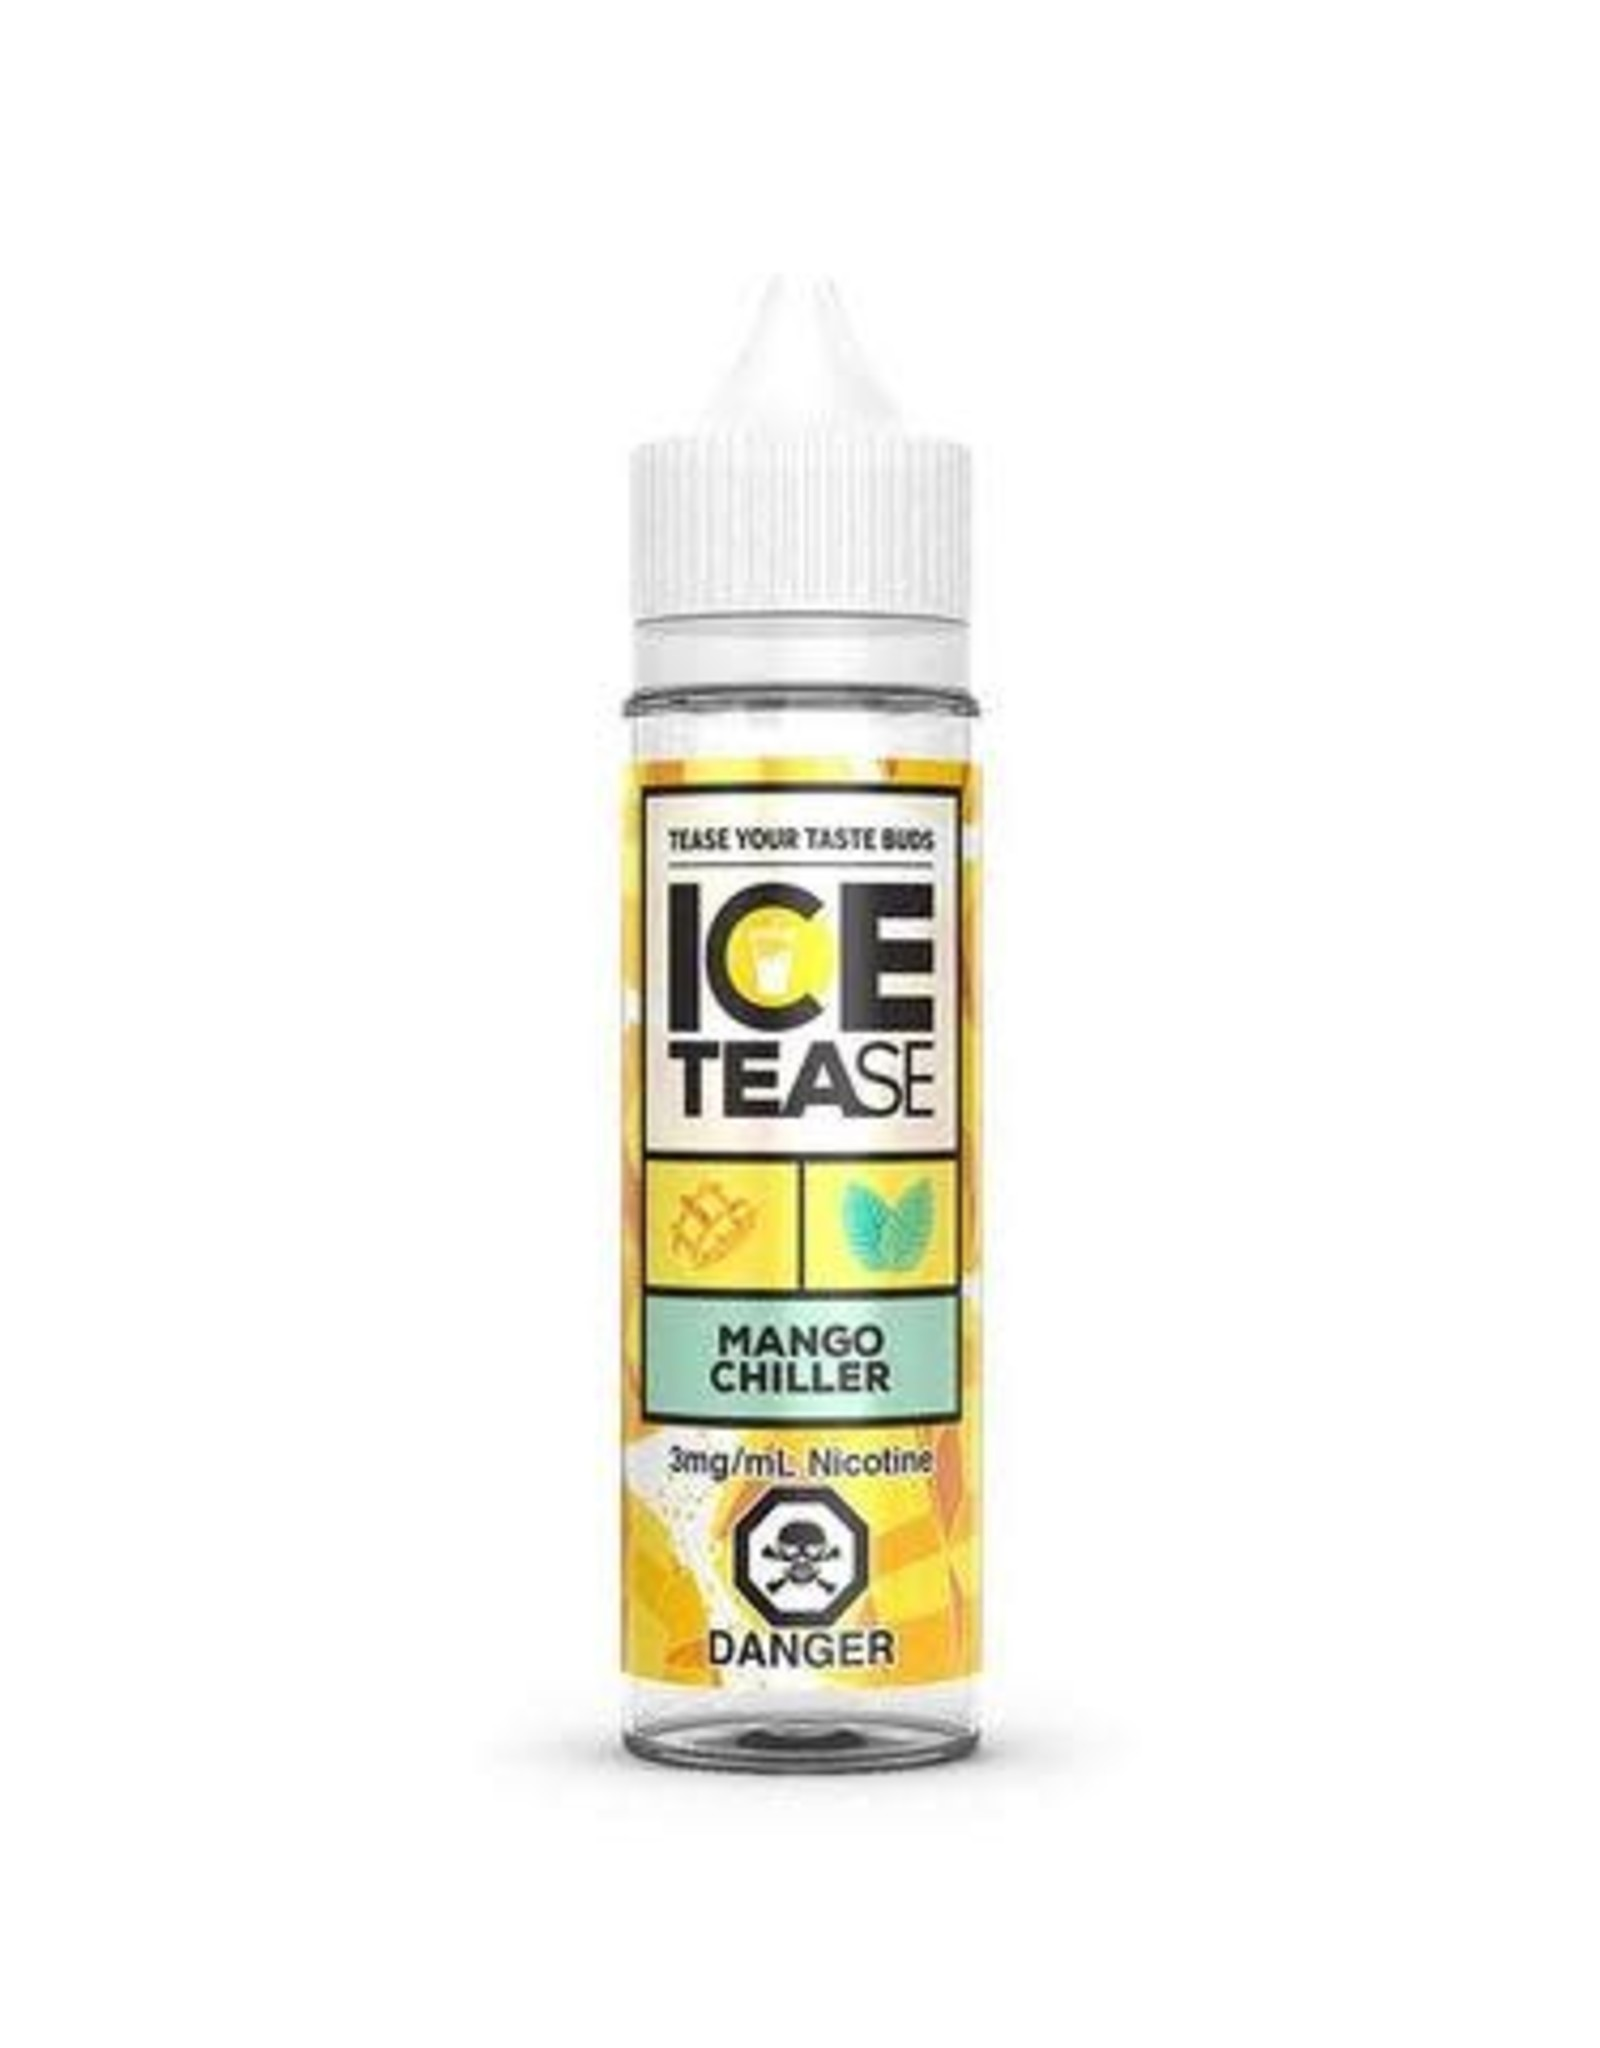 MANGO CHILLER BY ICE TEASE(60ml)